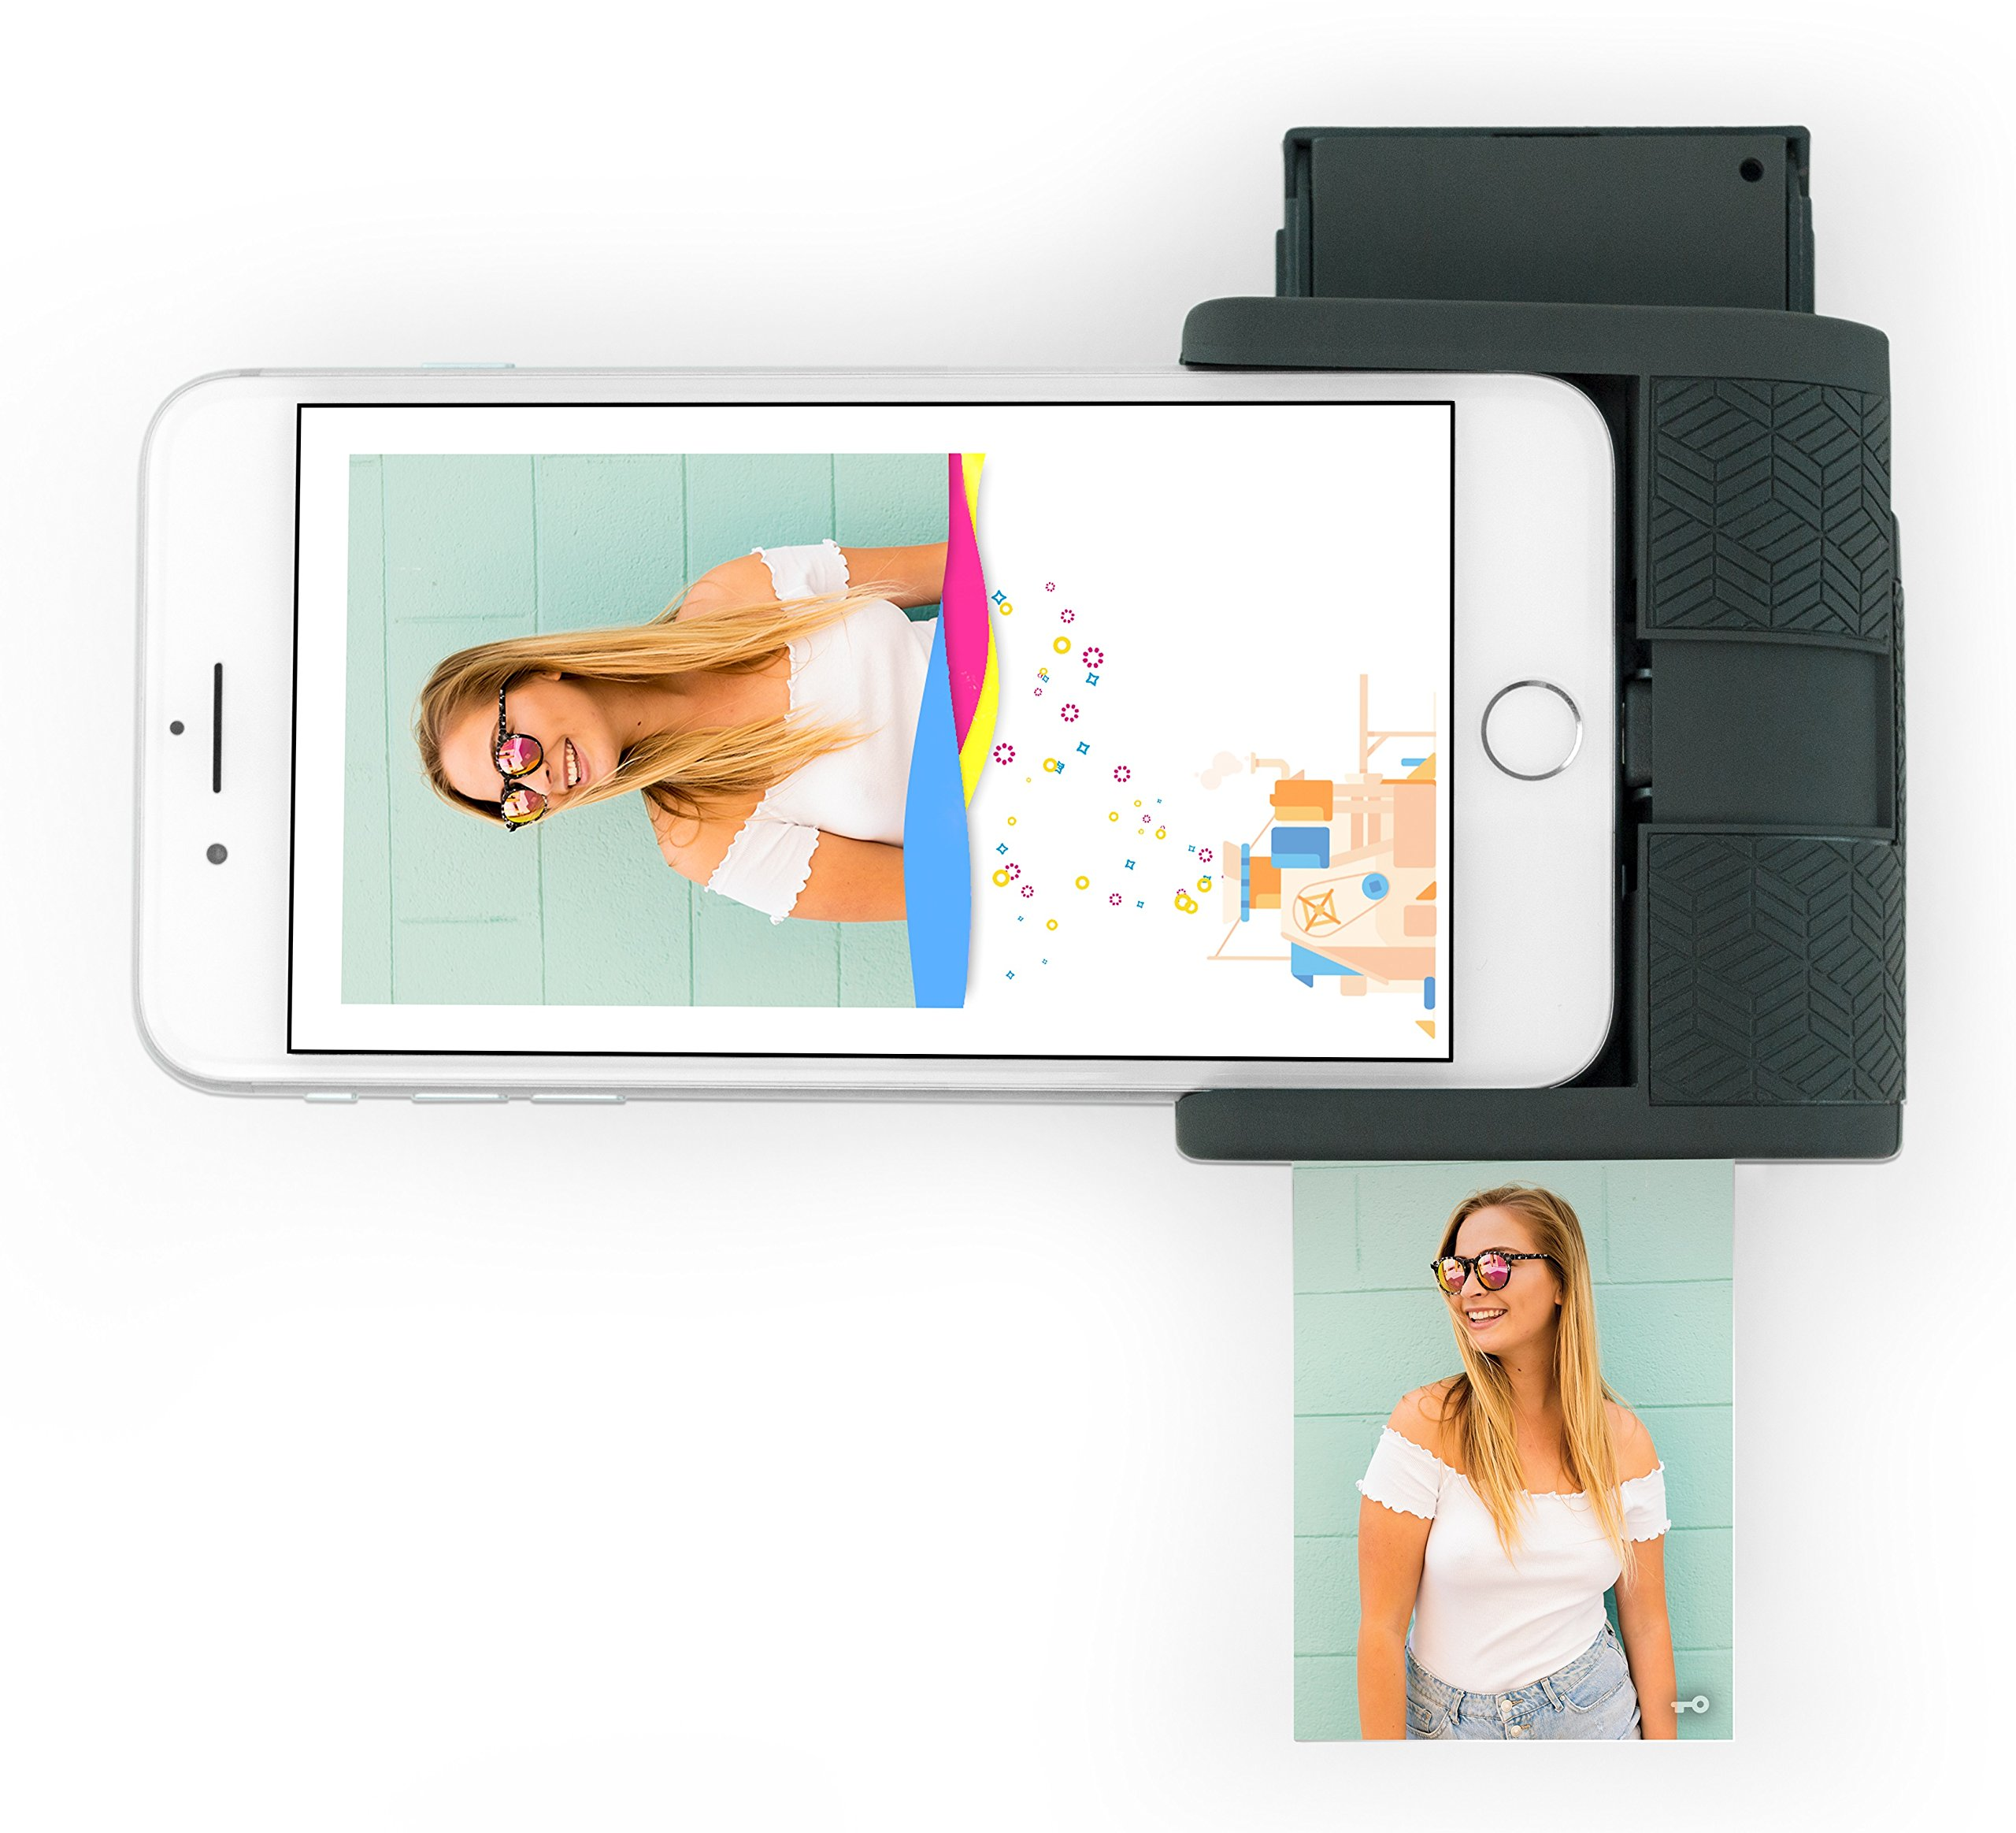 Prynt Pocket, Instant Photo Printer for iPhone - Graphite (PW310001-DG) by Prynt (Image #3)